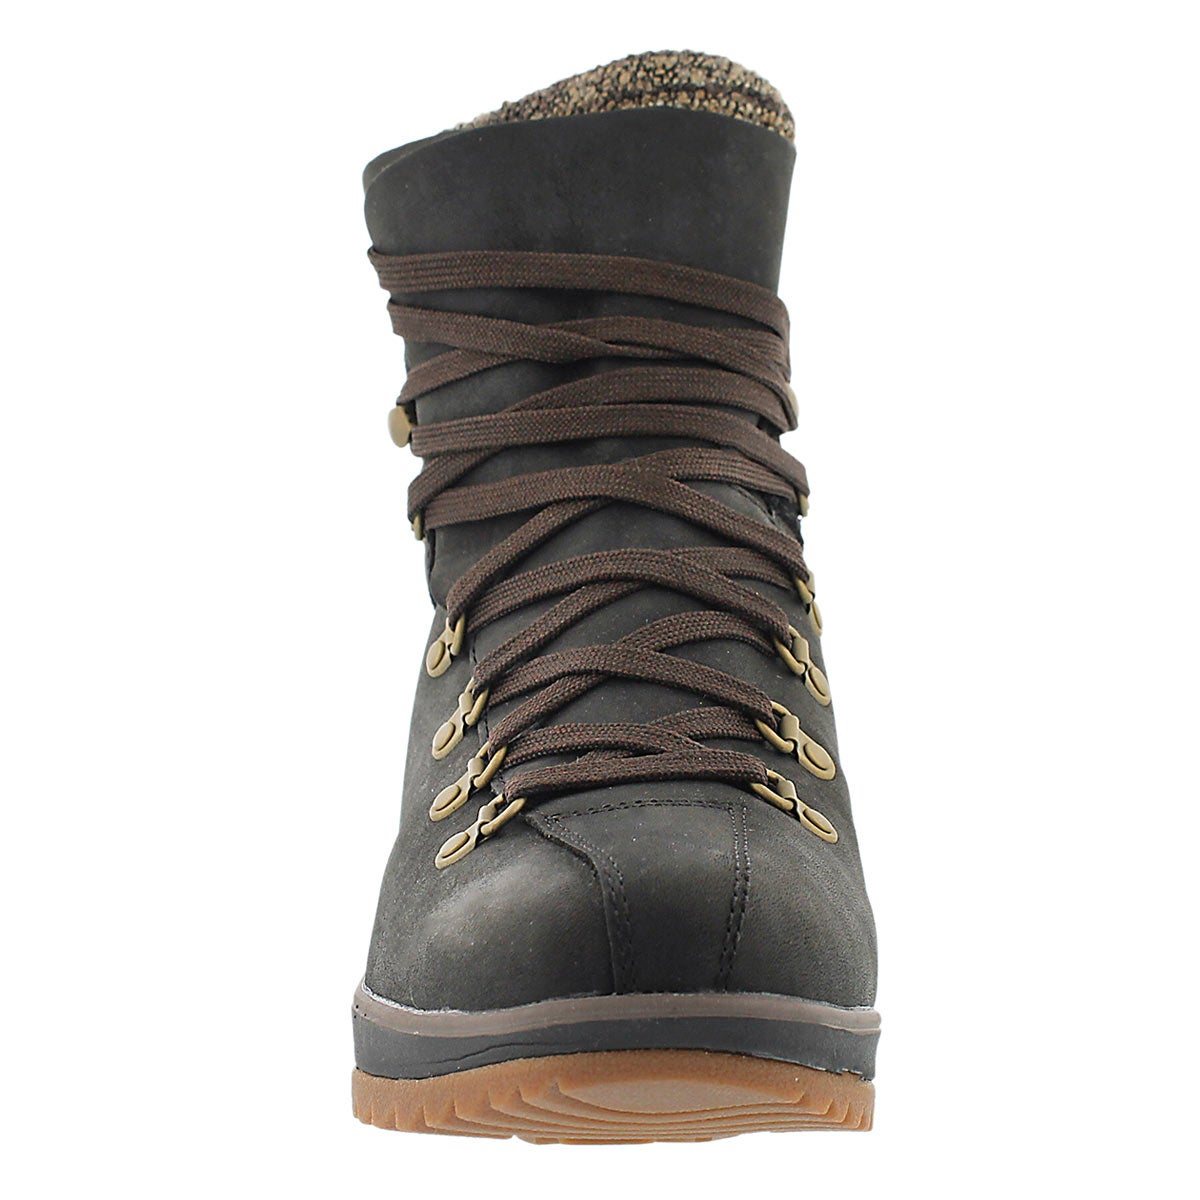 Lds Eventyr Ridge blk wtrpf winter boot